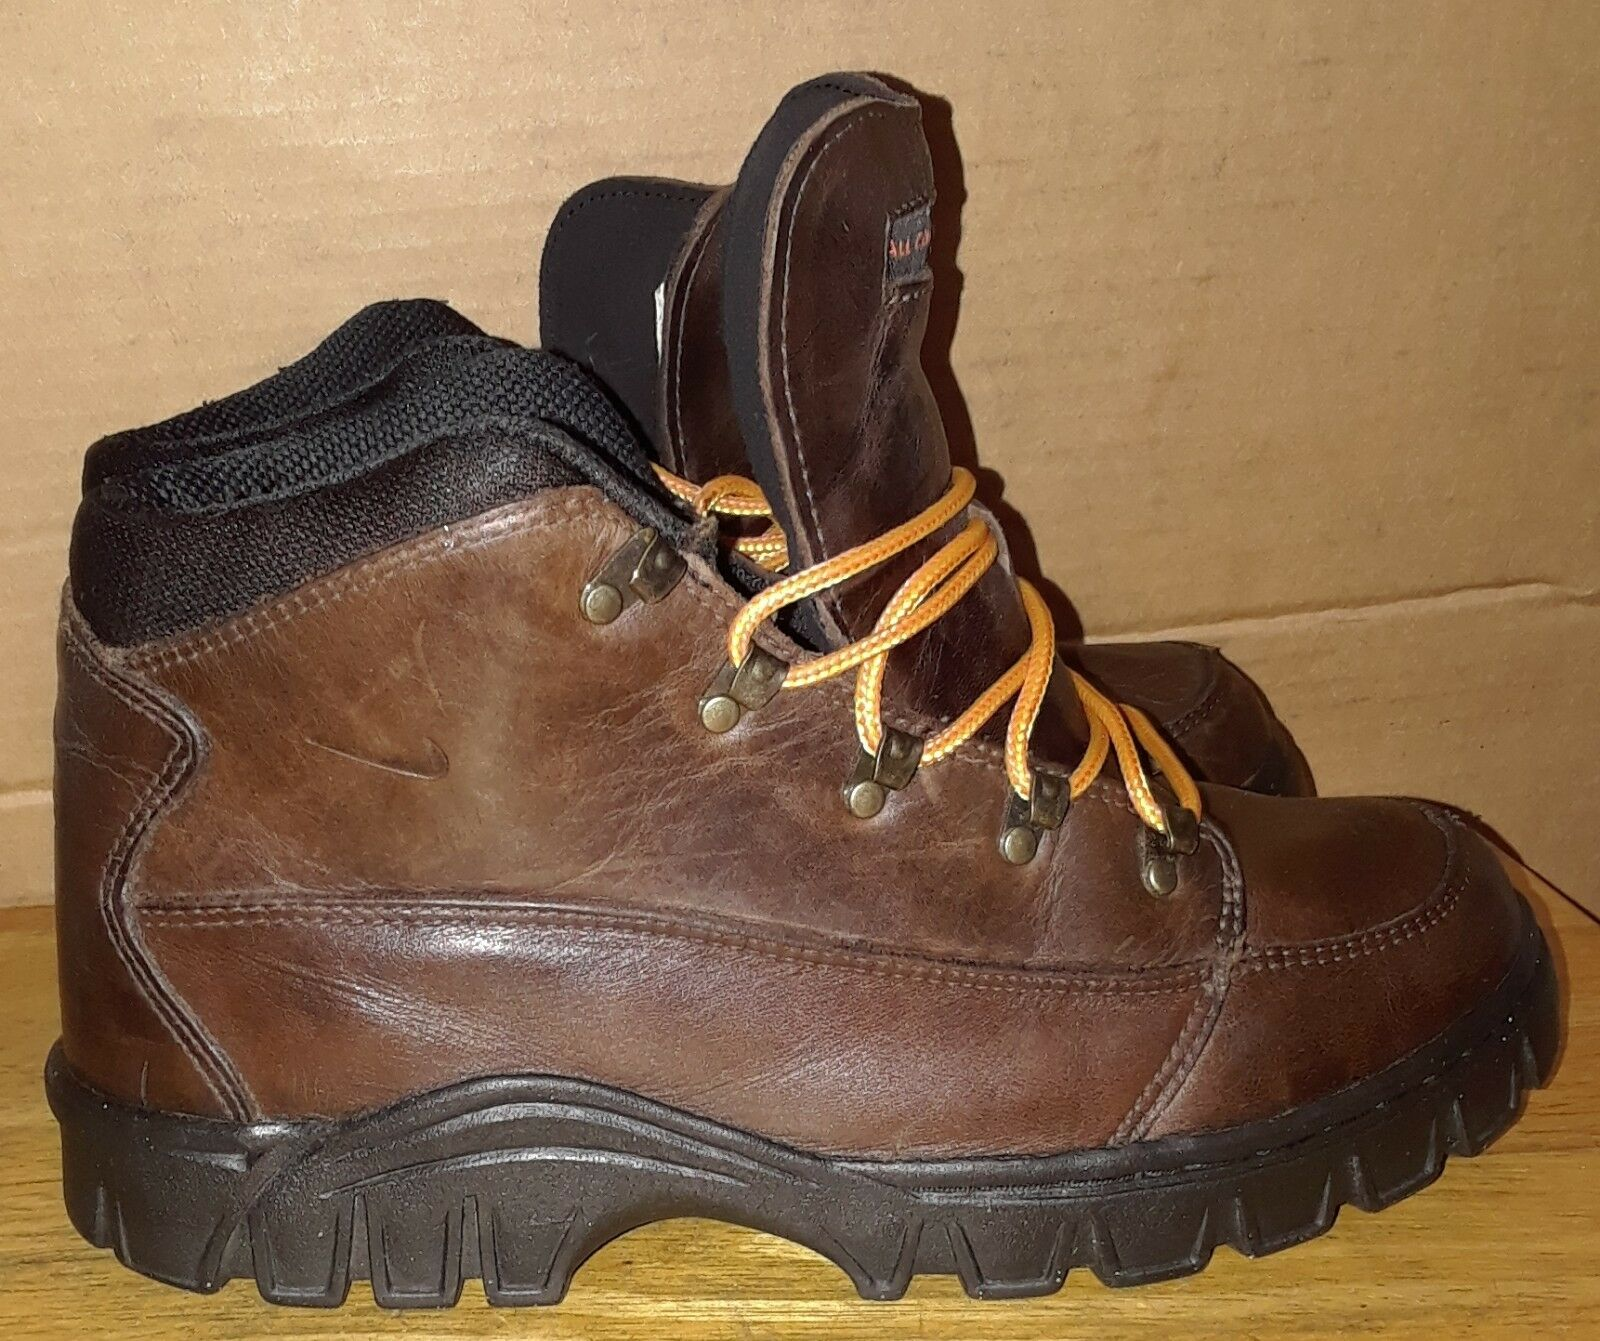 VINTAGE 1999 NIKE ACG 990709 BROWN LEATHER HIKING SHOES ANKLE BOOTS MEN'S Sz 8